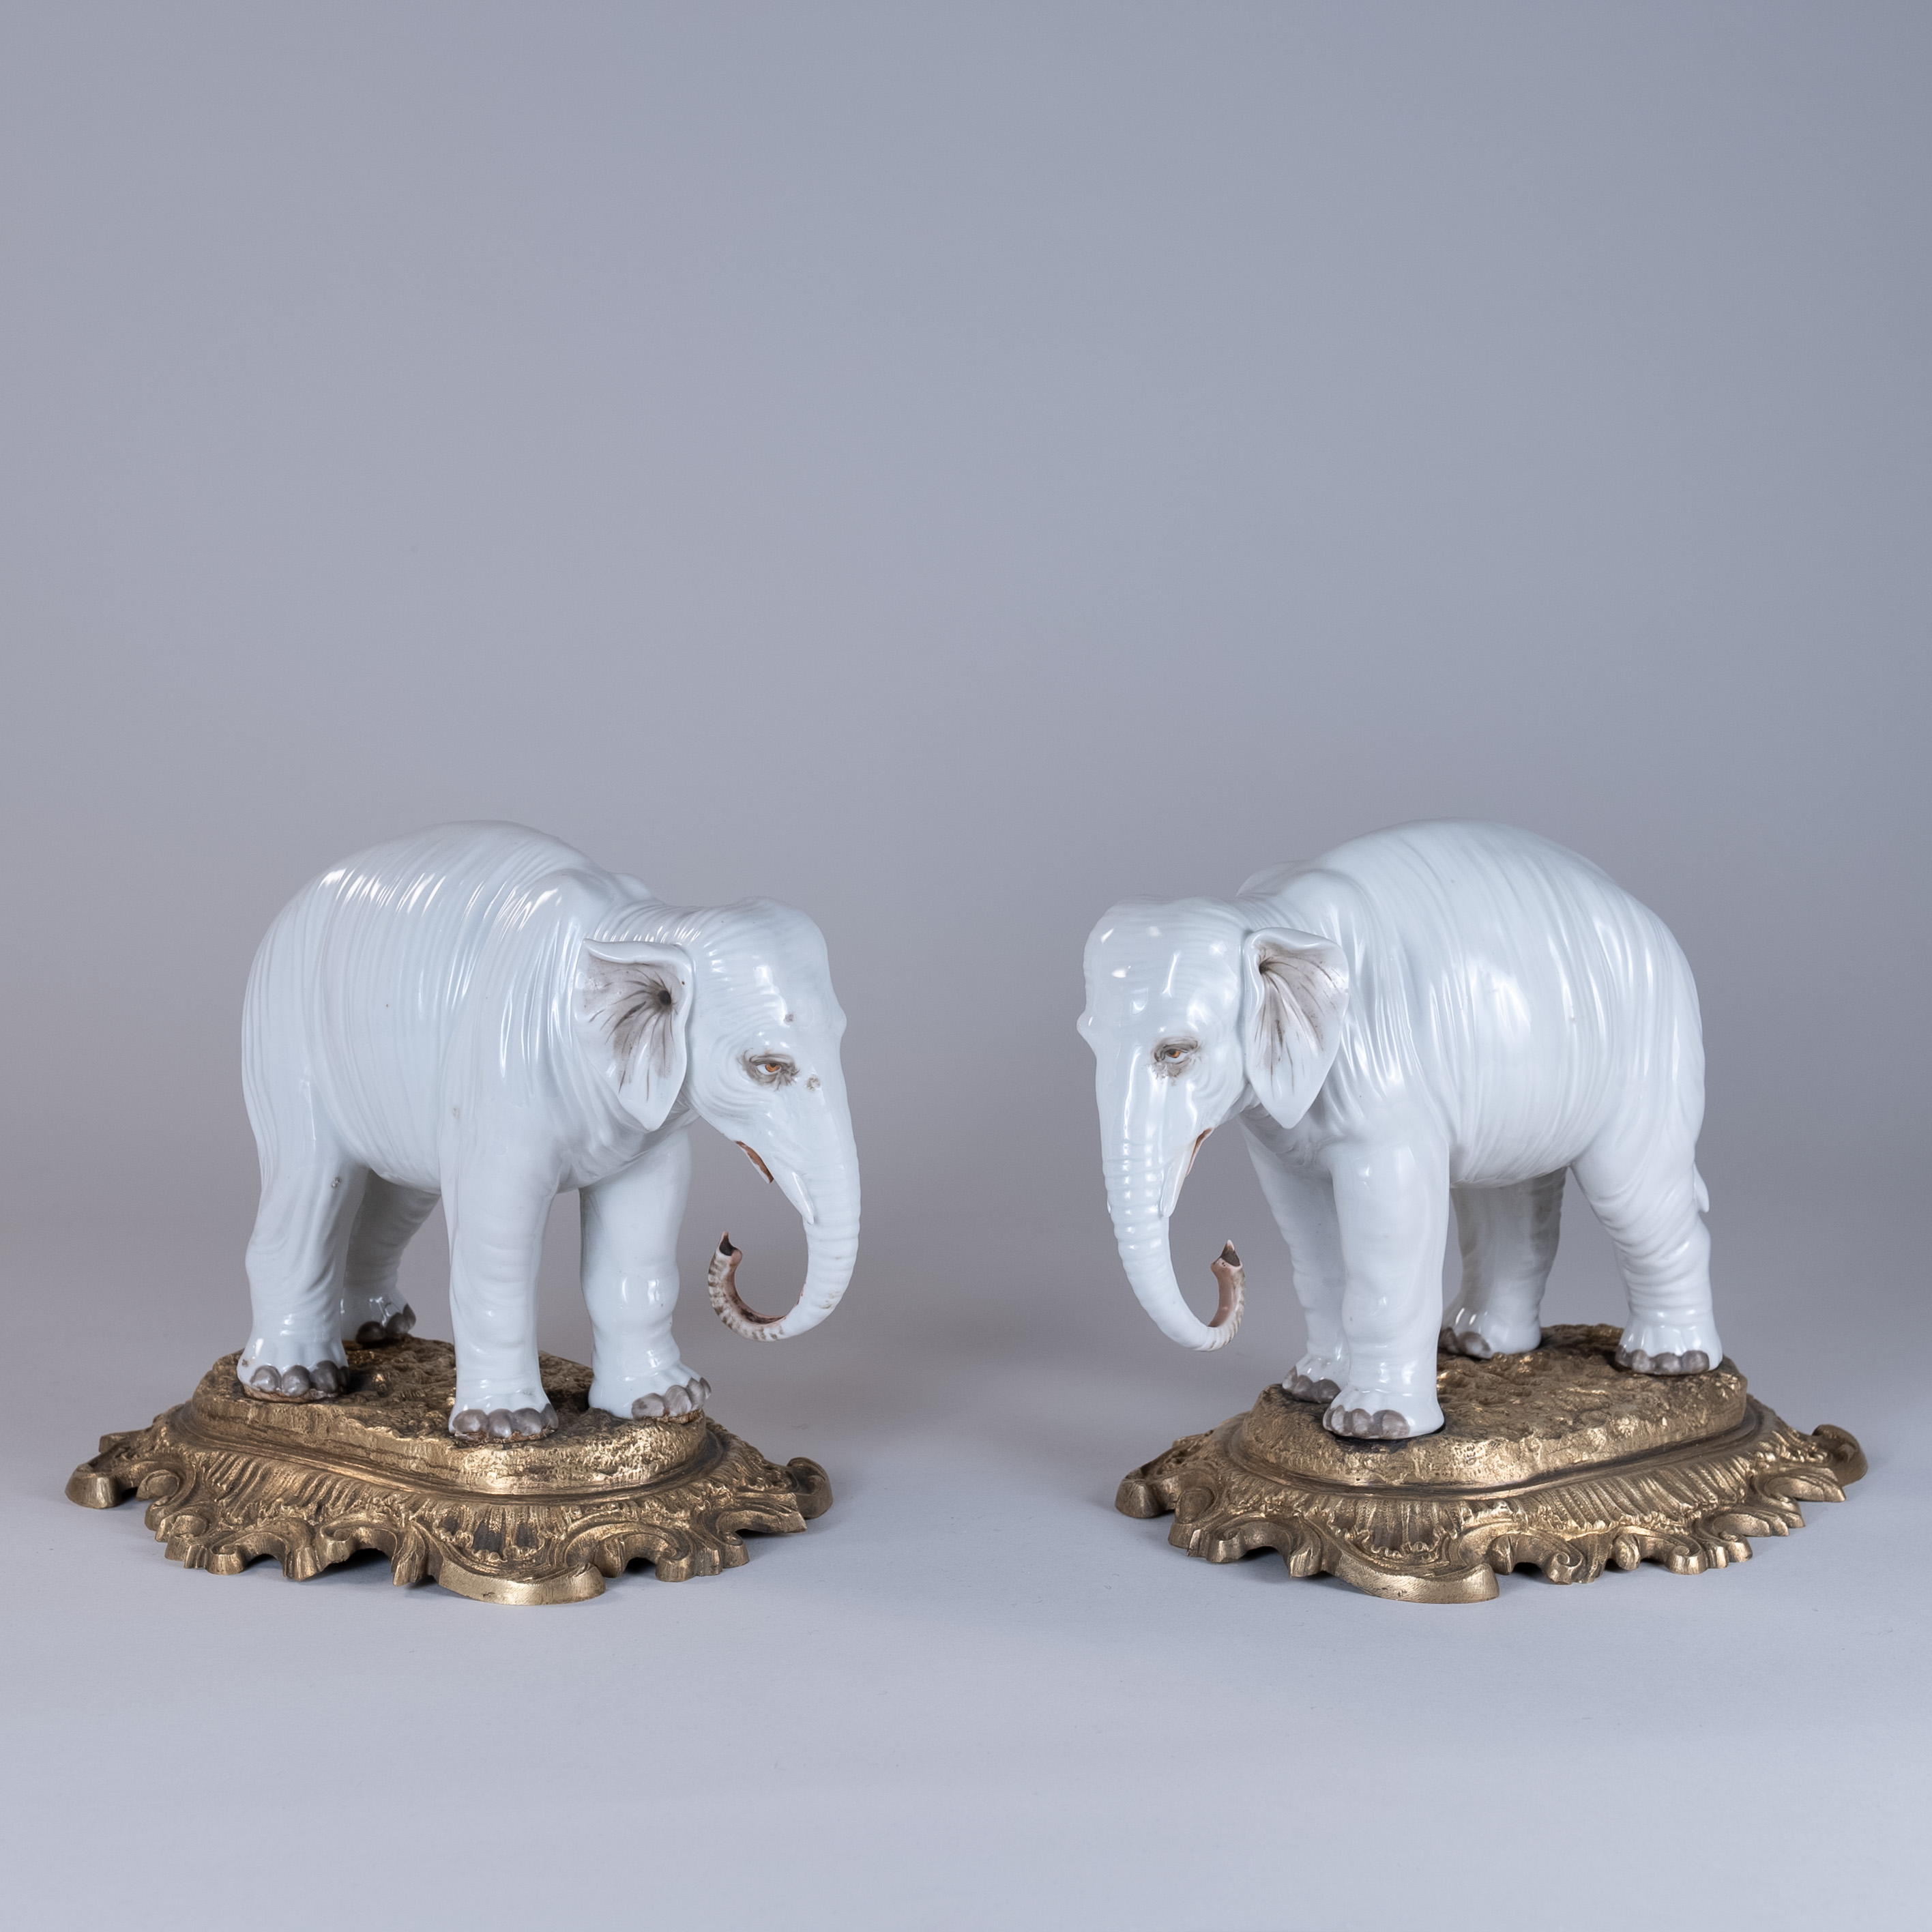 Late 19th Century Pair of White Porcelain Elephants